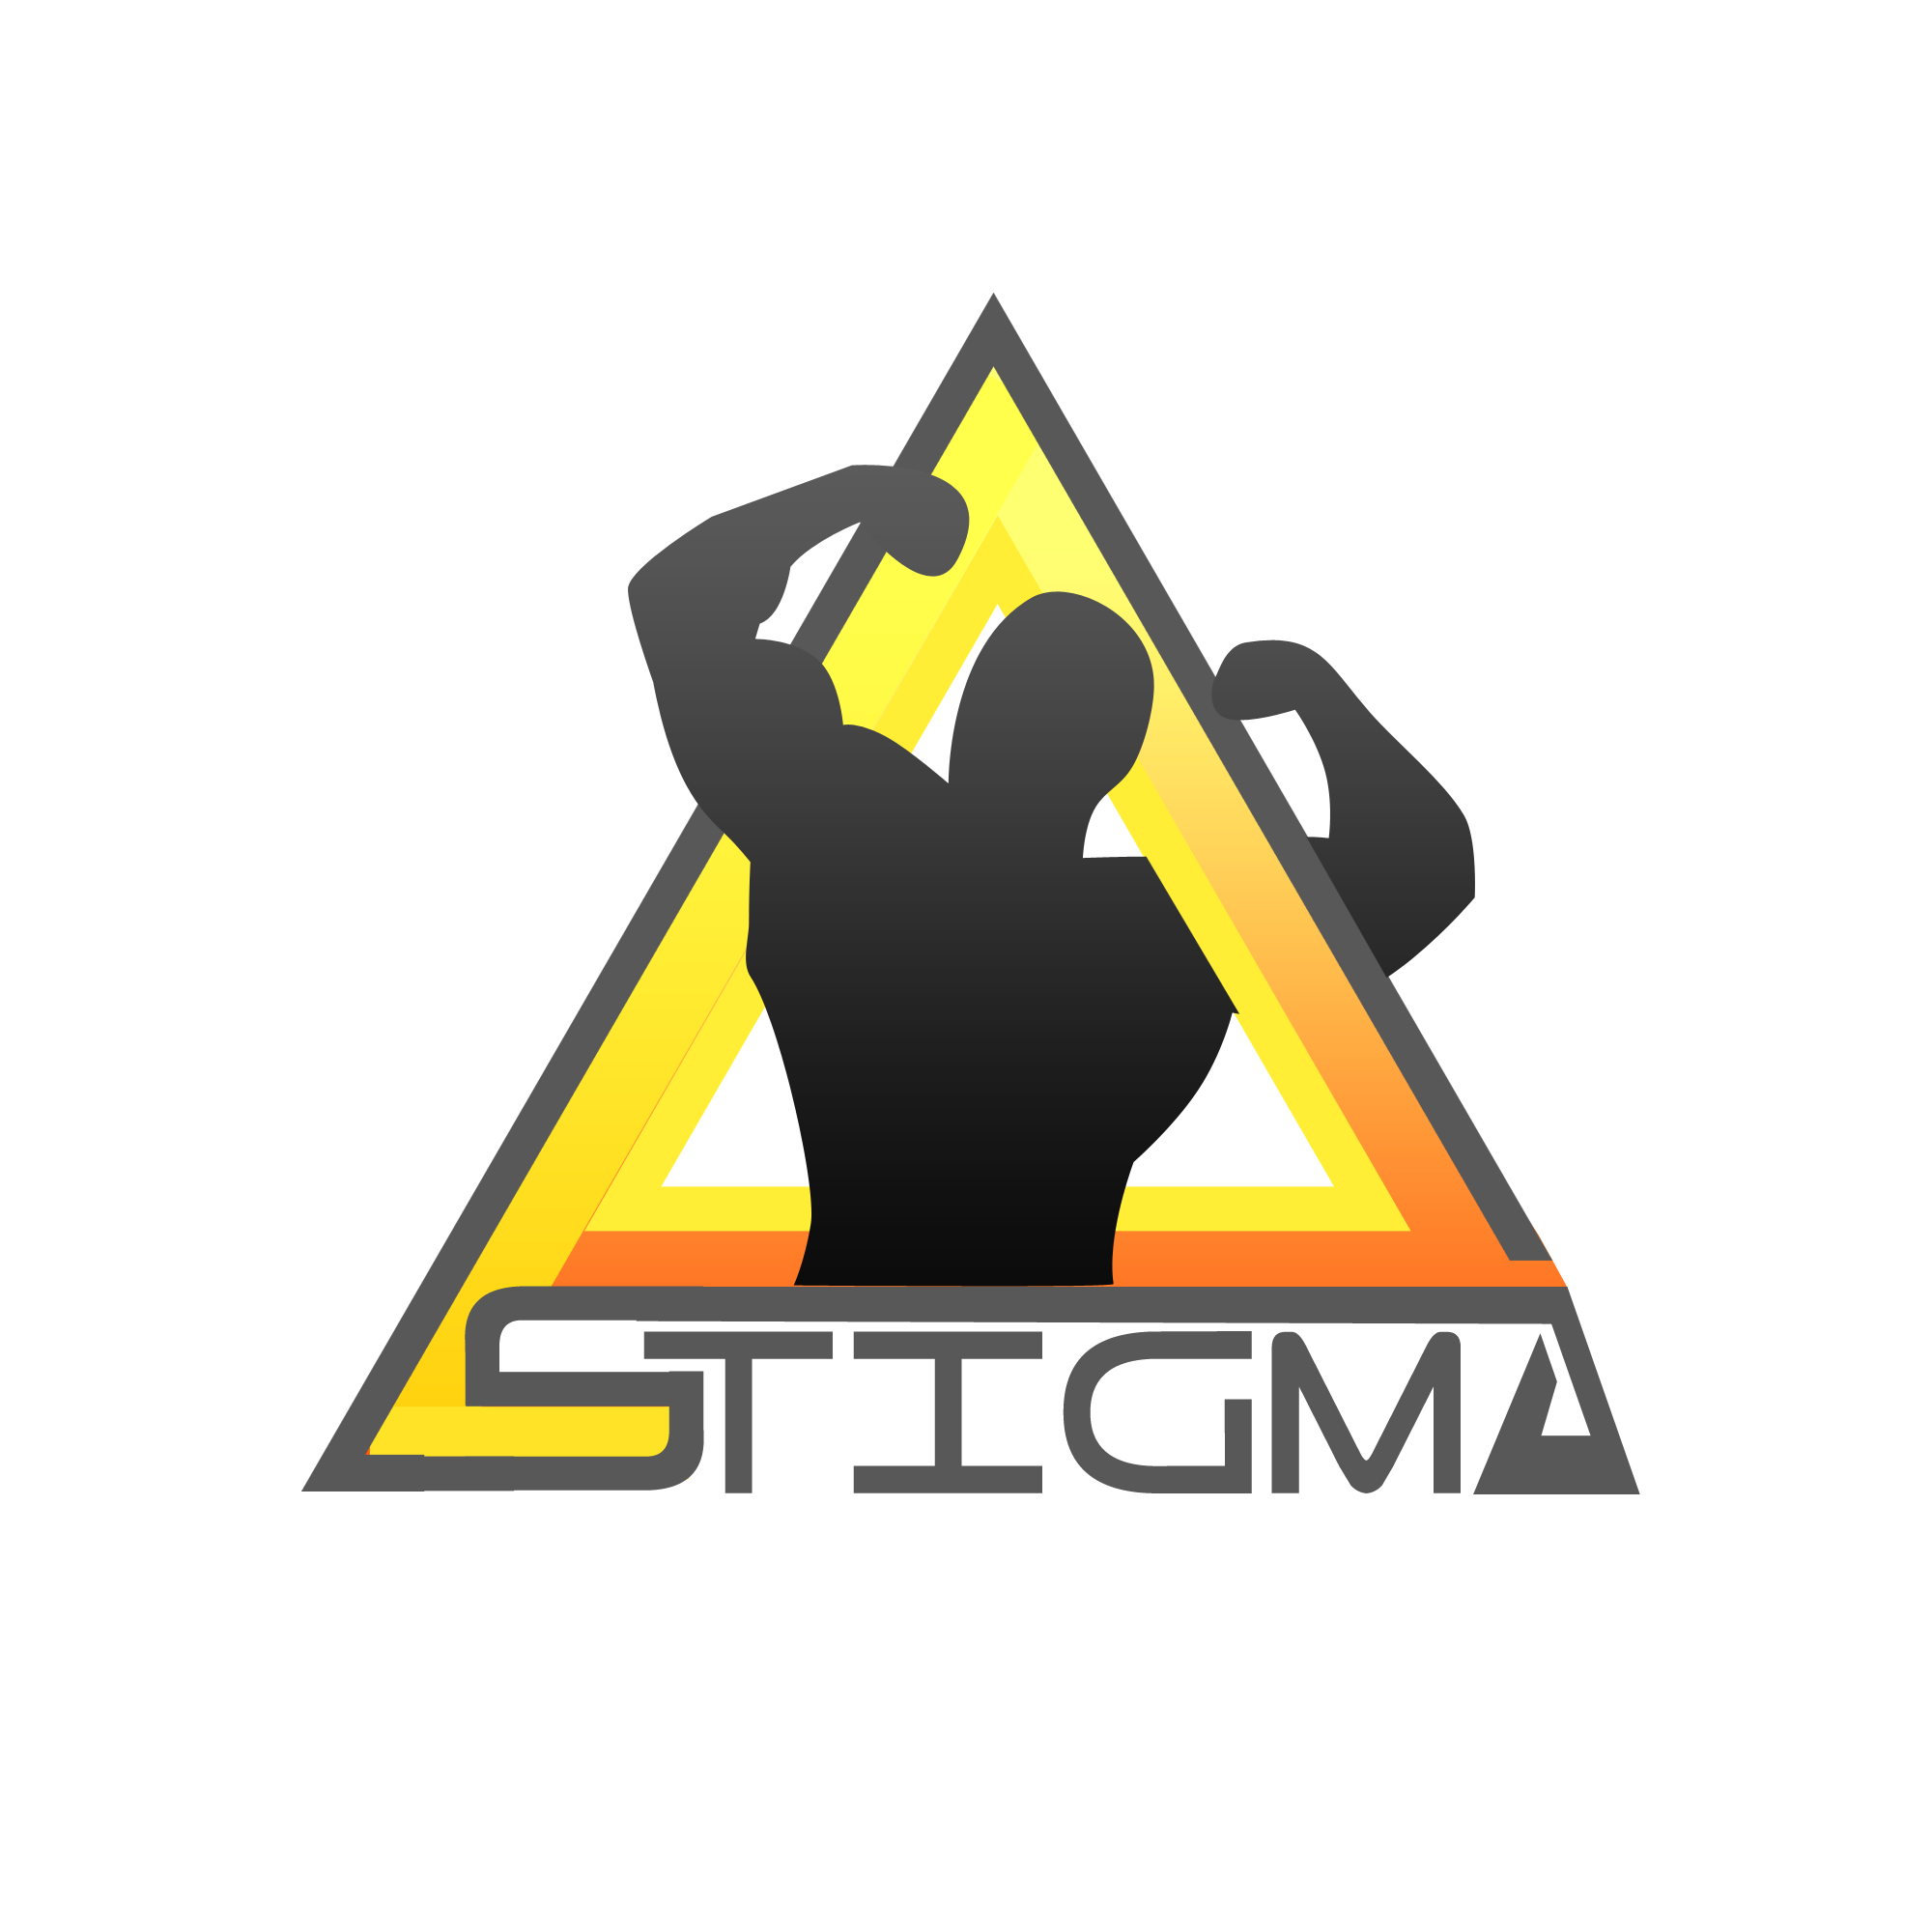 Logo Design by Kenneth Joel - Entry No. 25 in the Logo Design Contest Creative Logo Design for STIGMA.